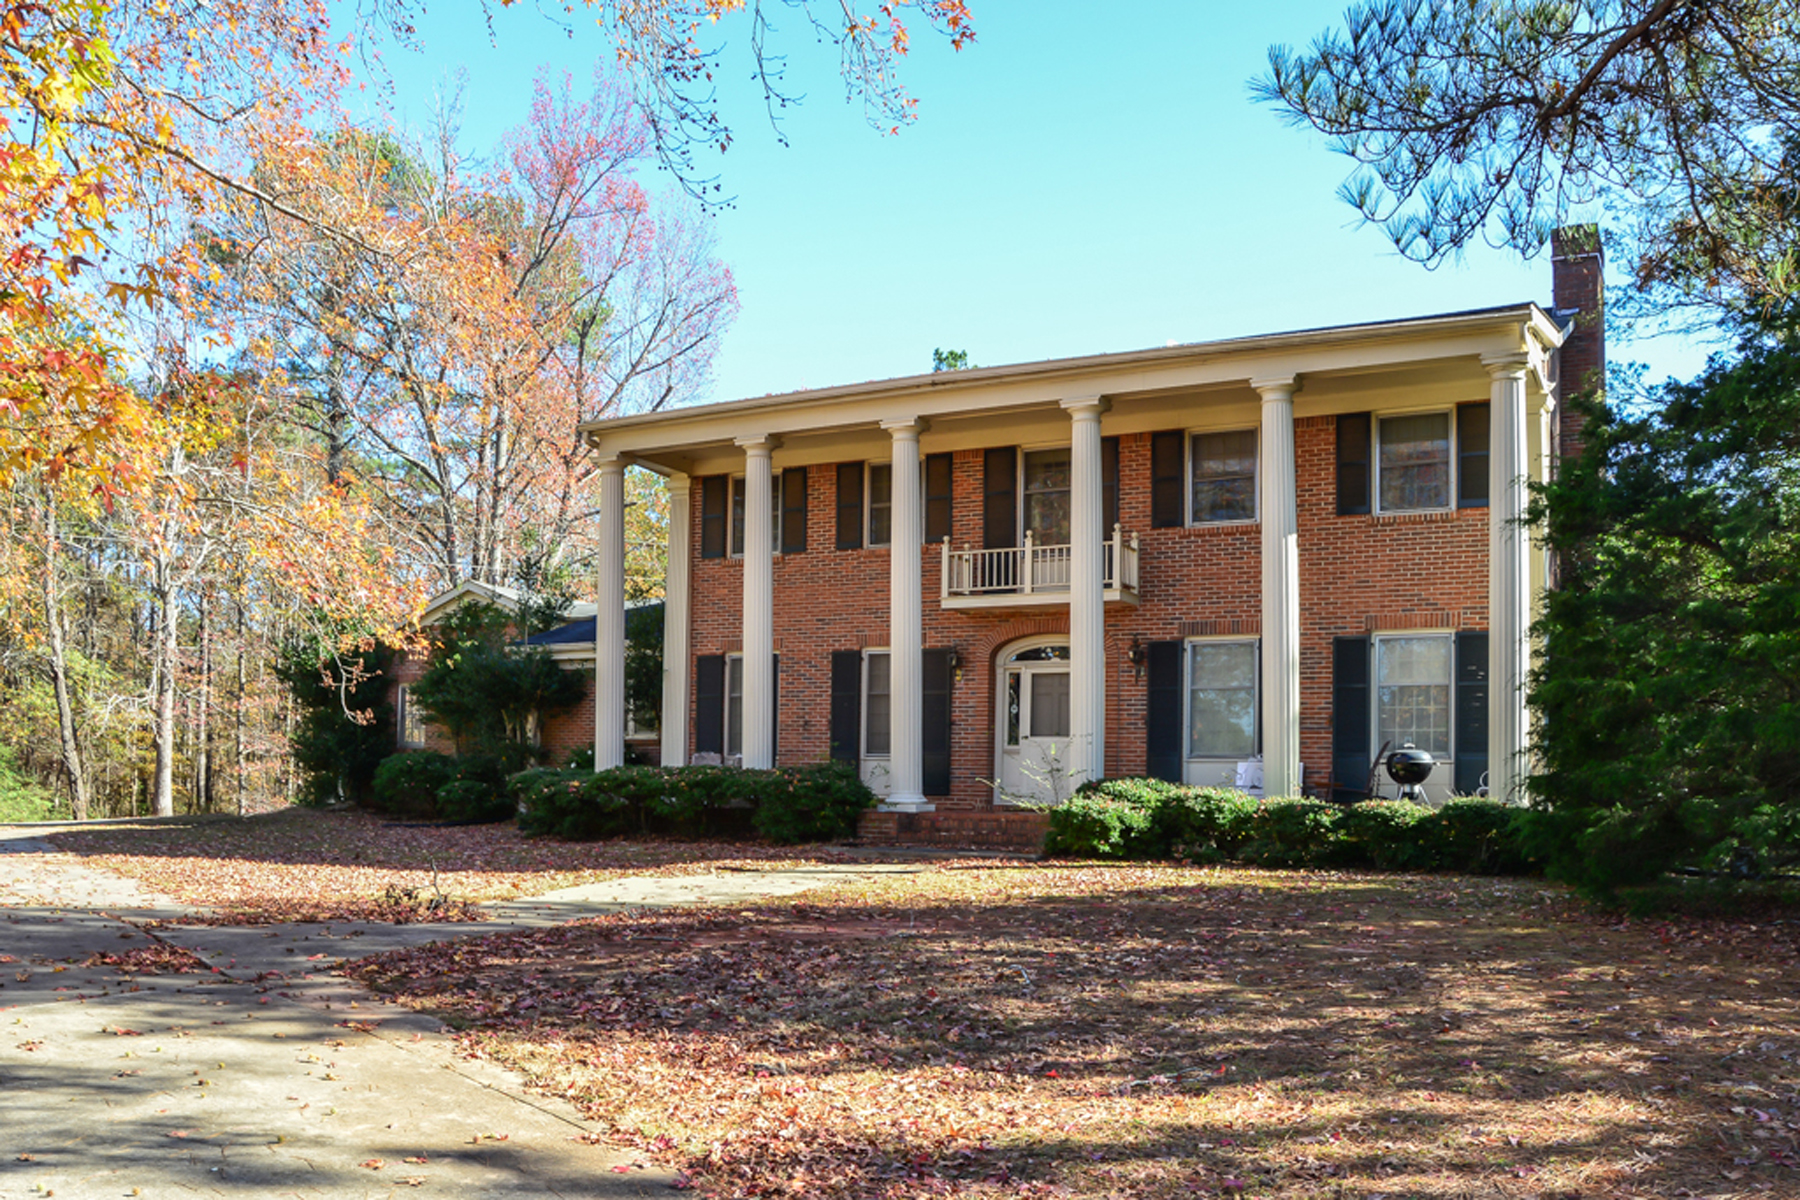 Single Family Home for Active at 54 Acre Horse Farm 2660 Old Salem Road SE Conyers, Georgia 30013 United States